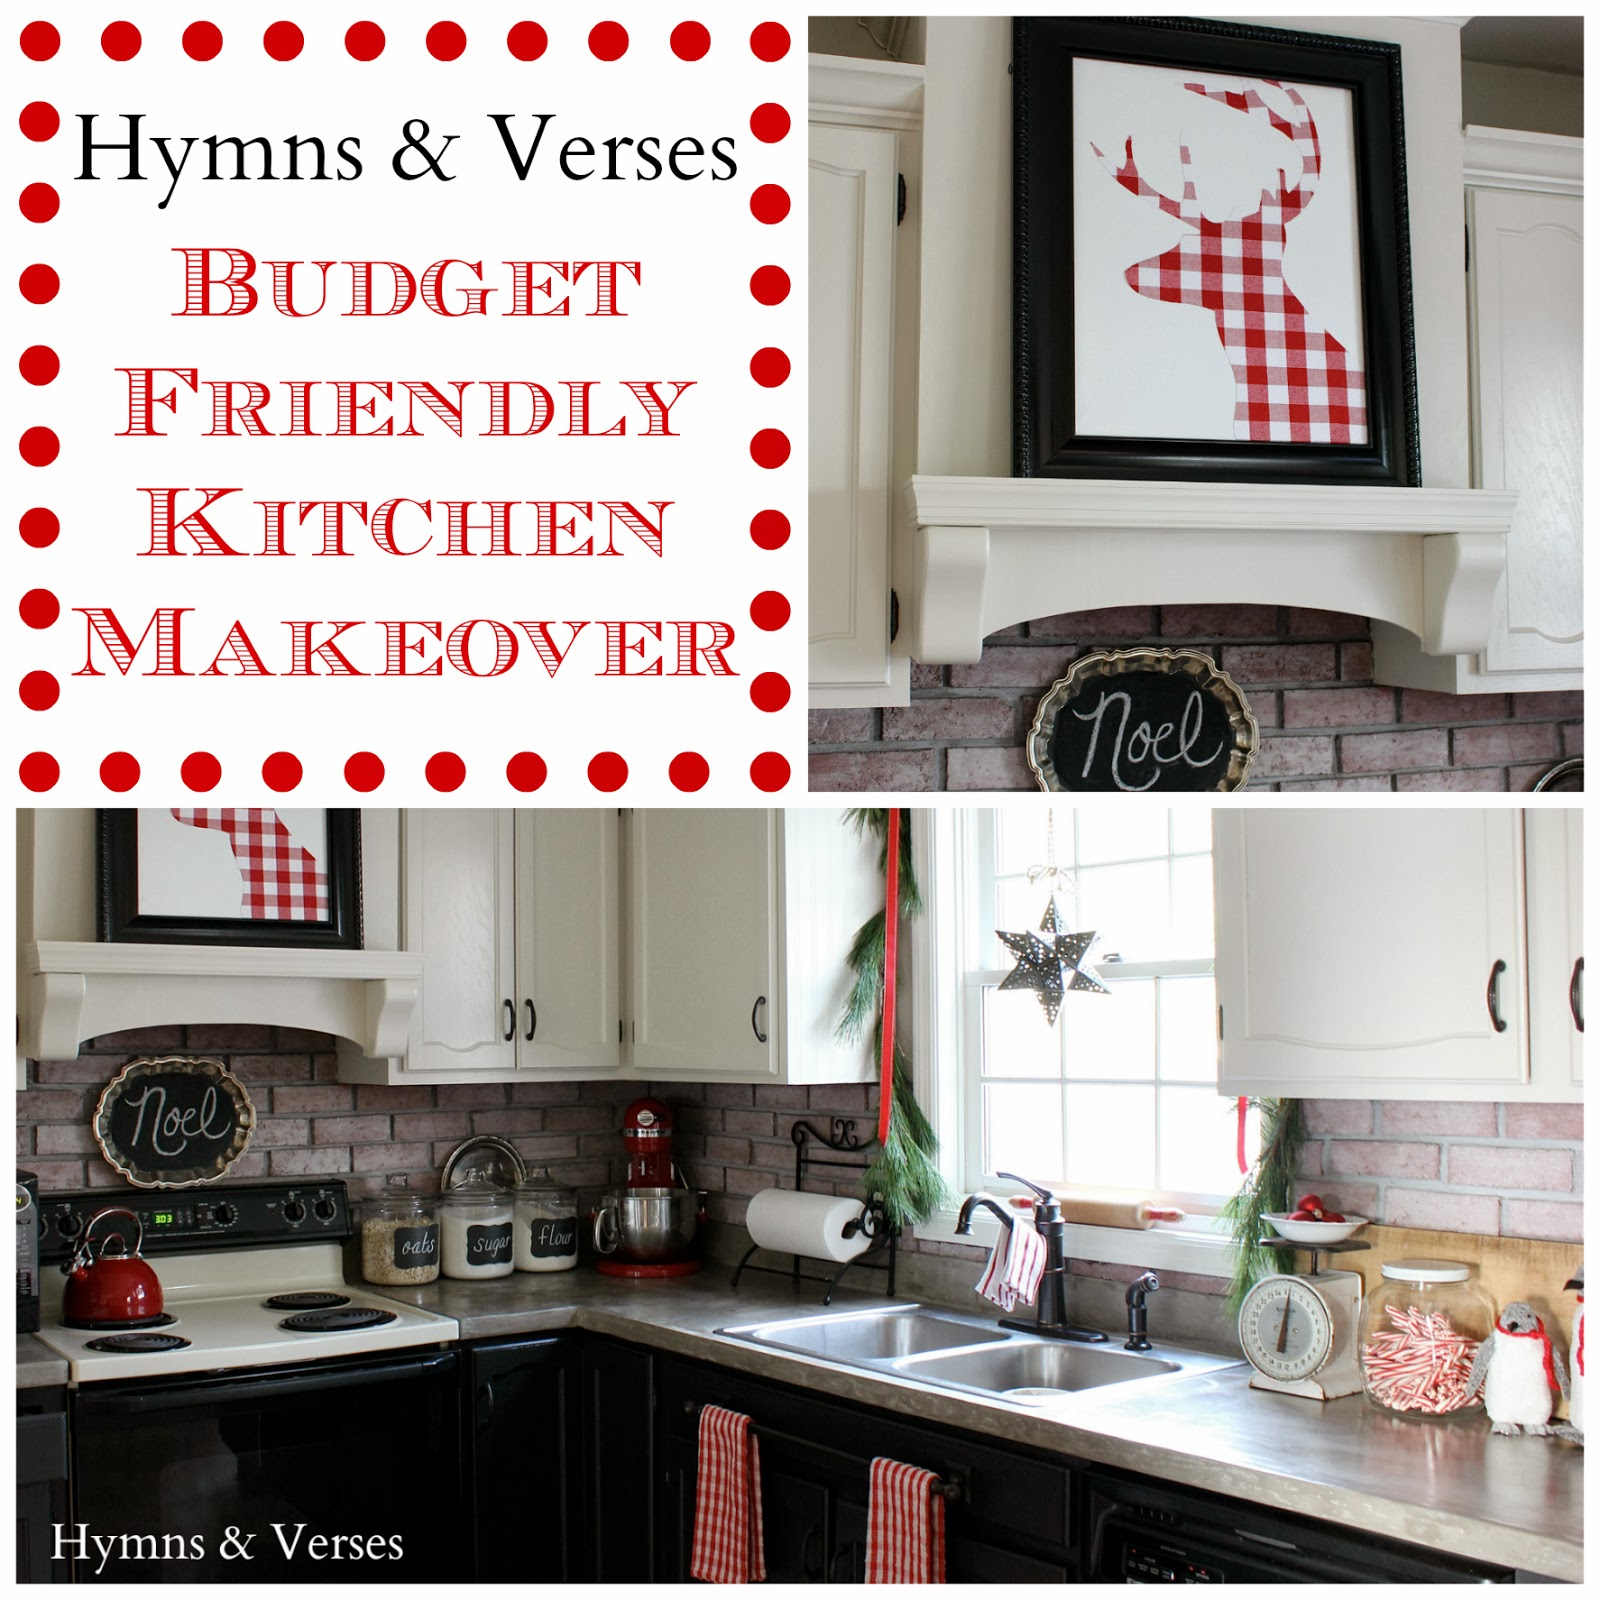 Our DIY Kitchen Makeover | Hymns and Verses